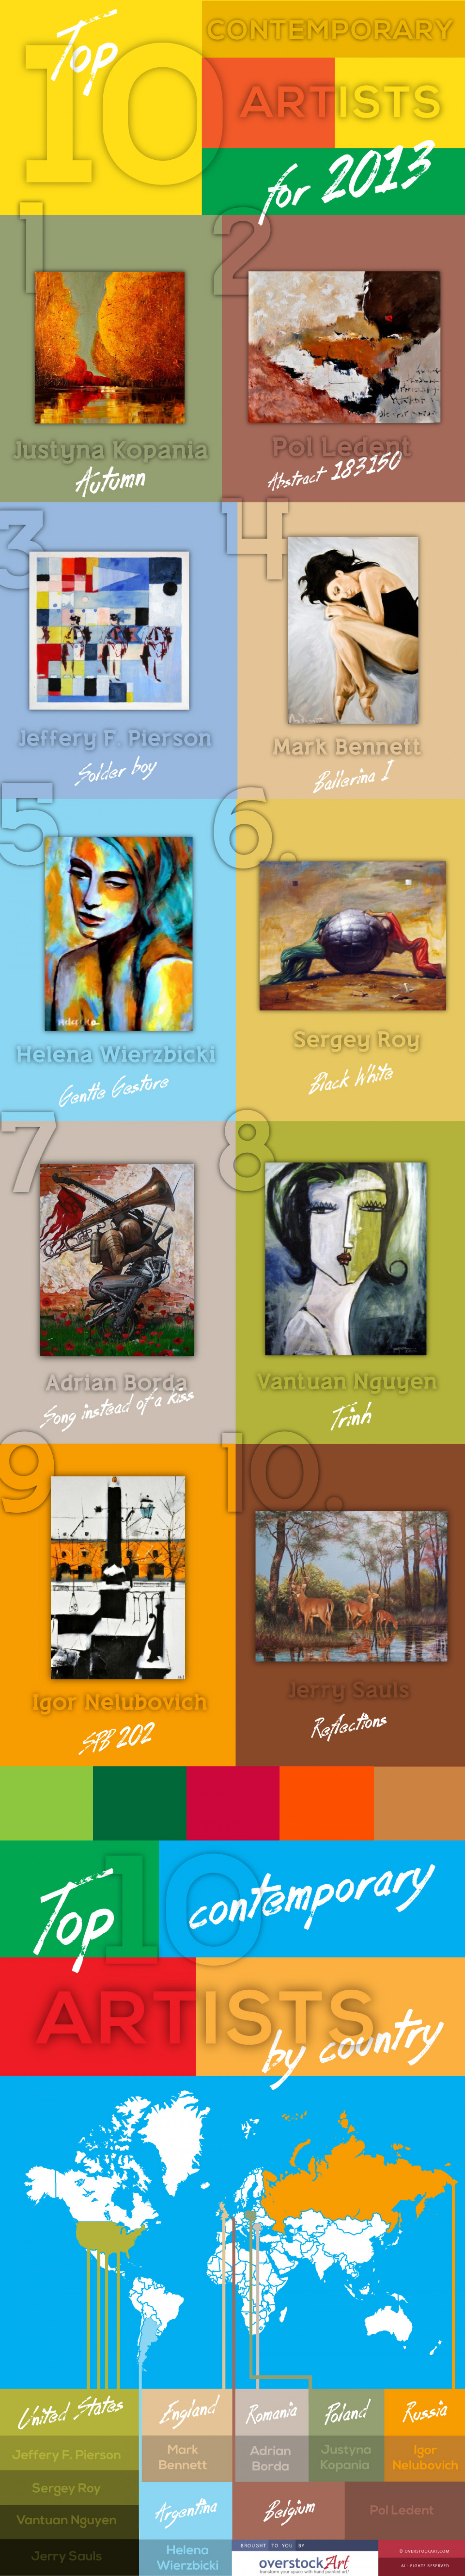 Top 10 Contemporary Artists of 2013 Infographic